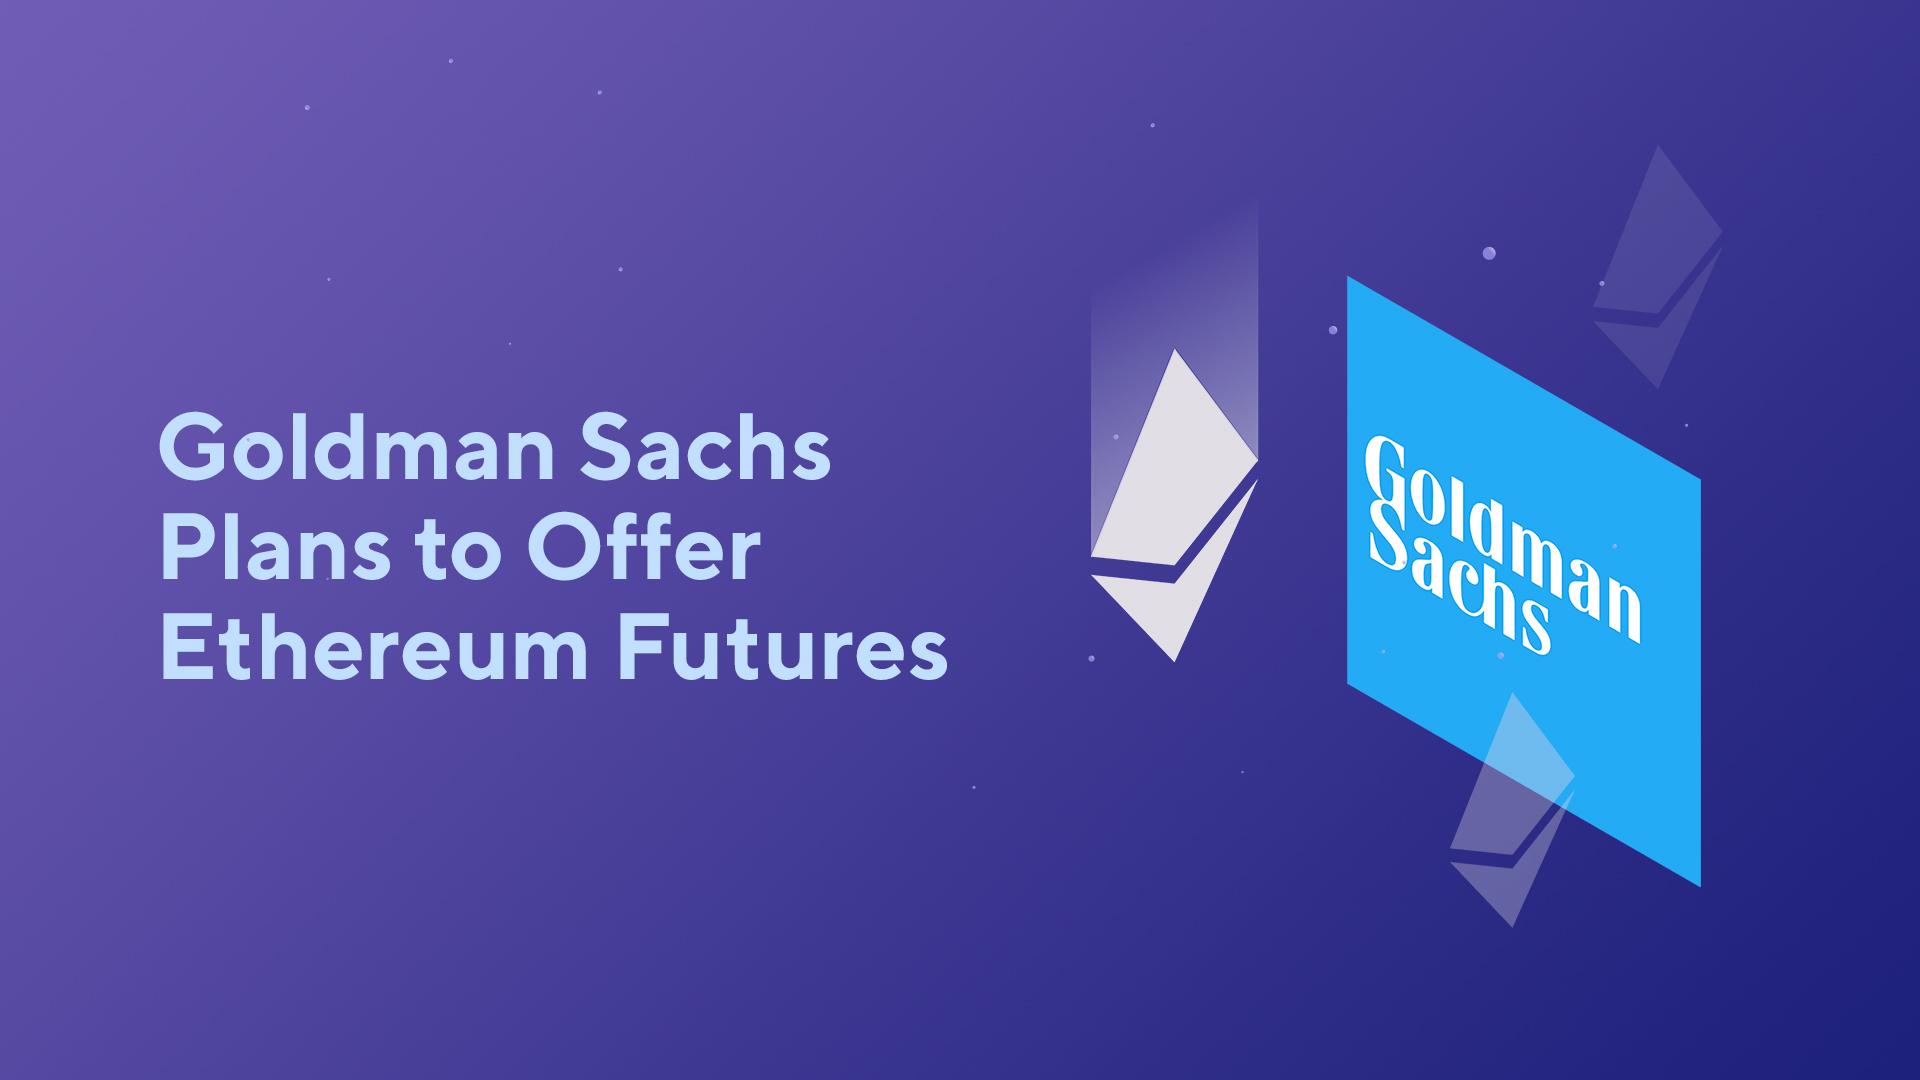 Goldman Sachs Plans to Offer Ethereum Futures